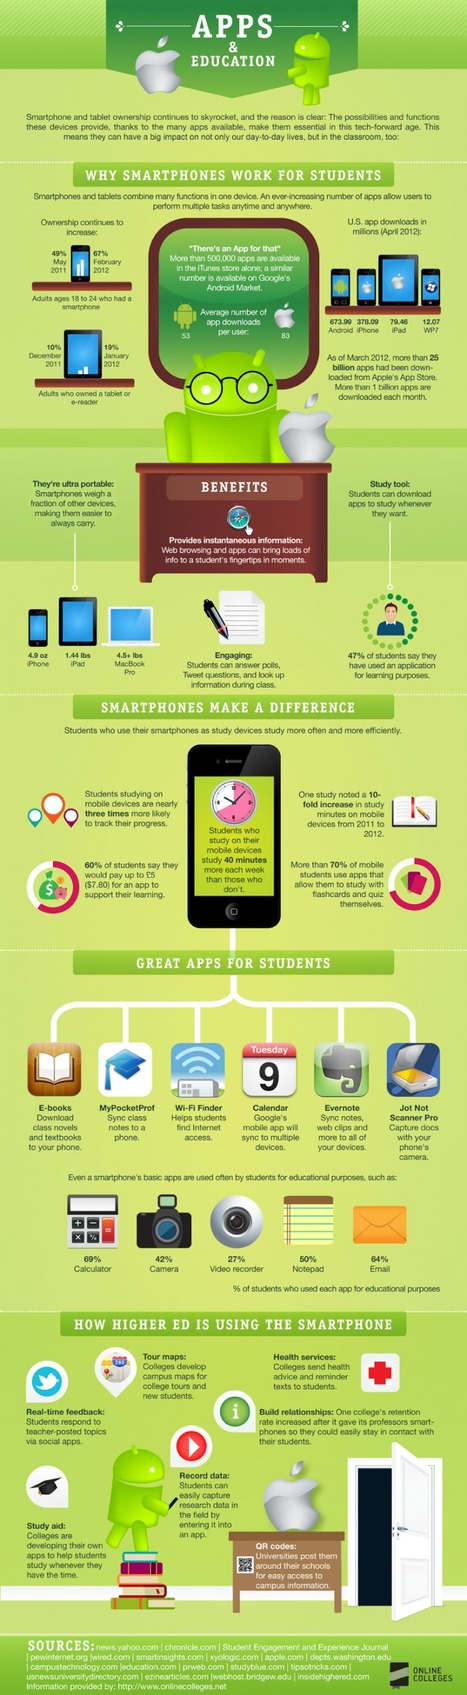 The 60-Second Guide To Smartphones In Education | Edudemic | Film, Art, Design, Transmedia, Culture and Education | Scoop.it